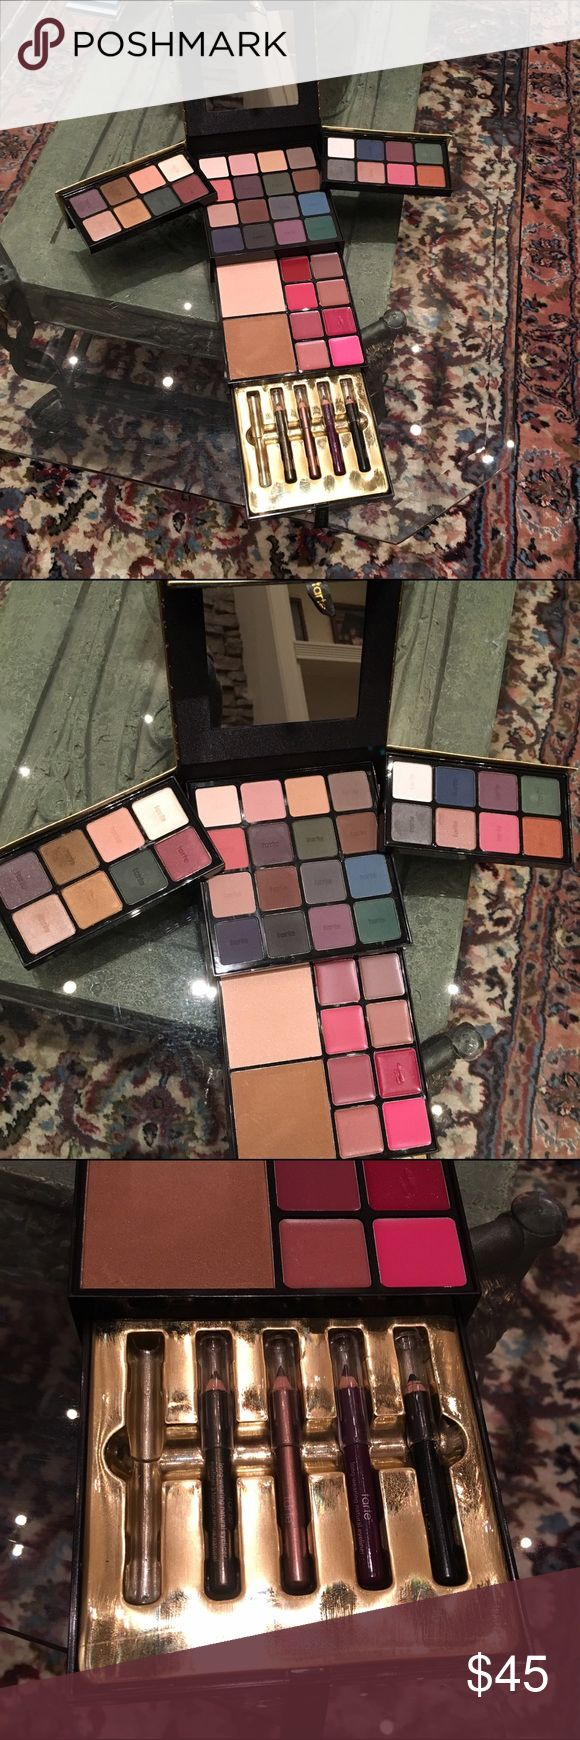 Tarte holiday palette Tarte holiday palette. So many ultra smooth shadows and lip creams! Only flaw is small dent in one of lip shades and missing one eyeliner. Some of the shades were swatched but relatively unused. tarte Makeup Eyeshadow